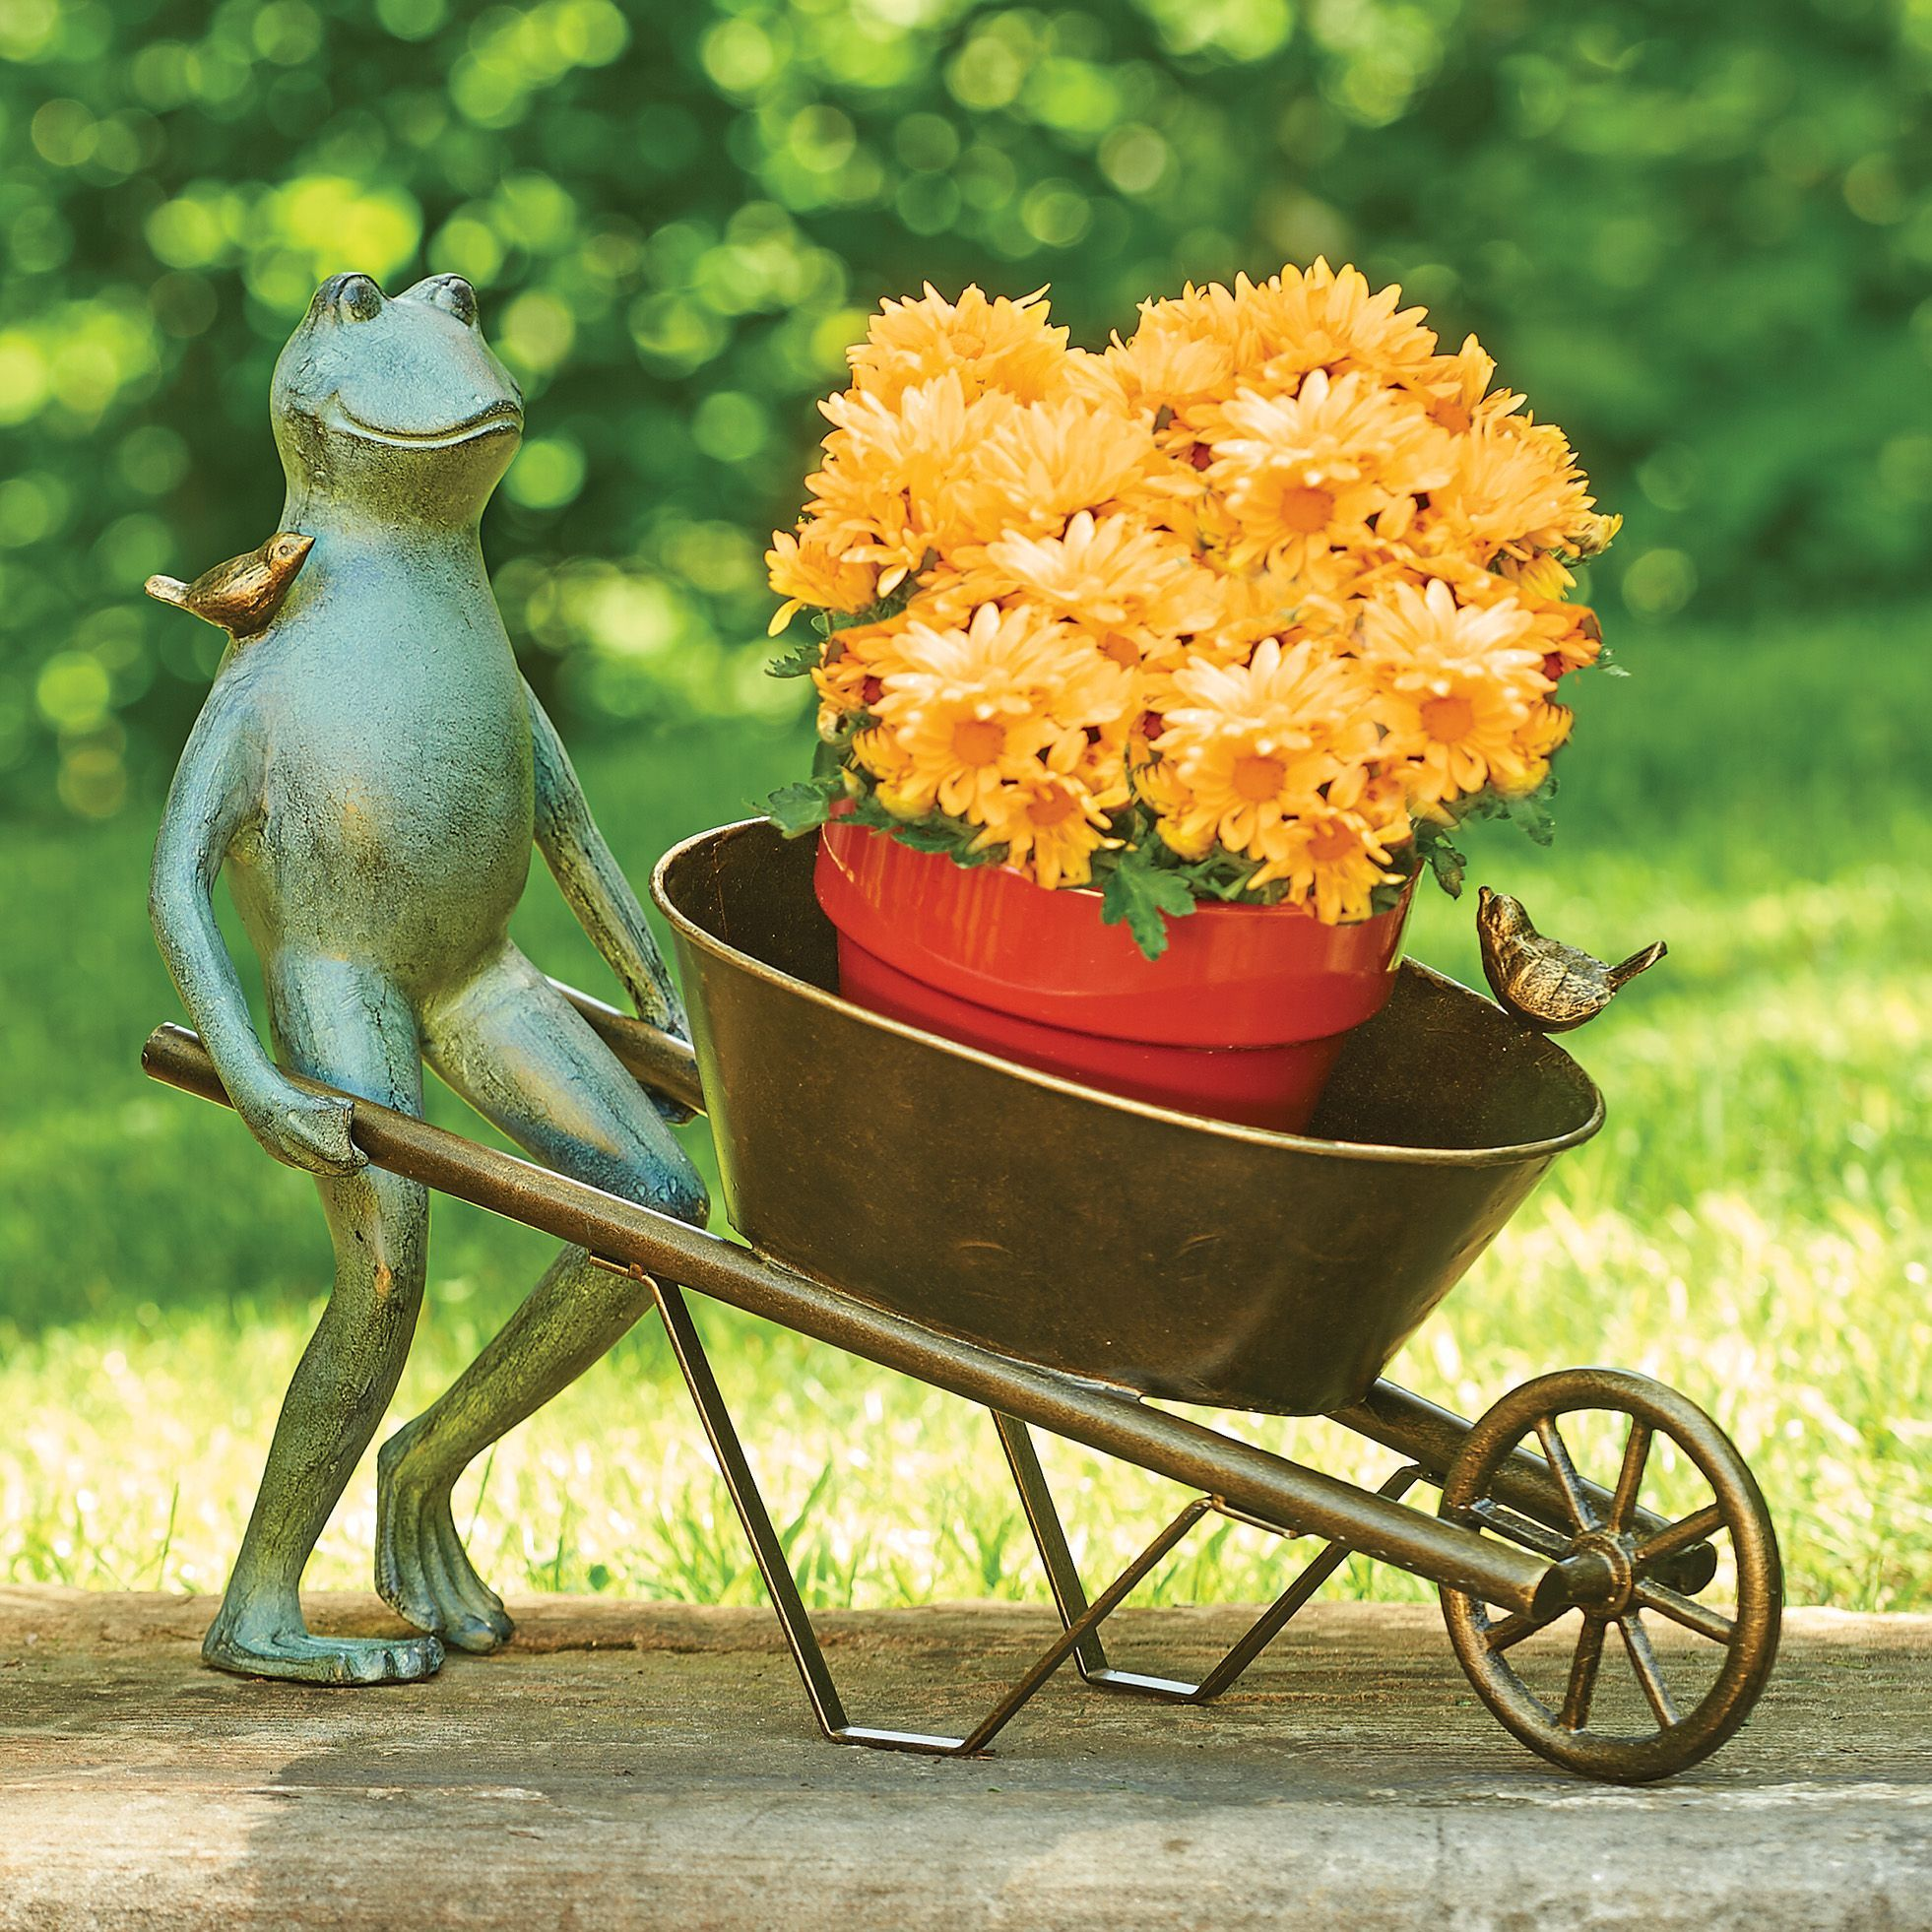 20 Most Beautiful Vintage Garden Ideas: This Cute Frog Is Happily Pushing His Wheelbarrow Planter